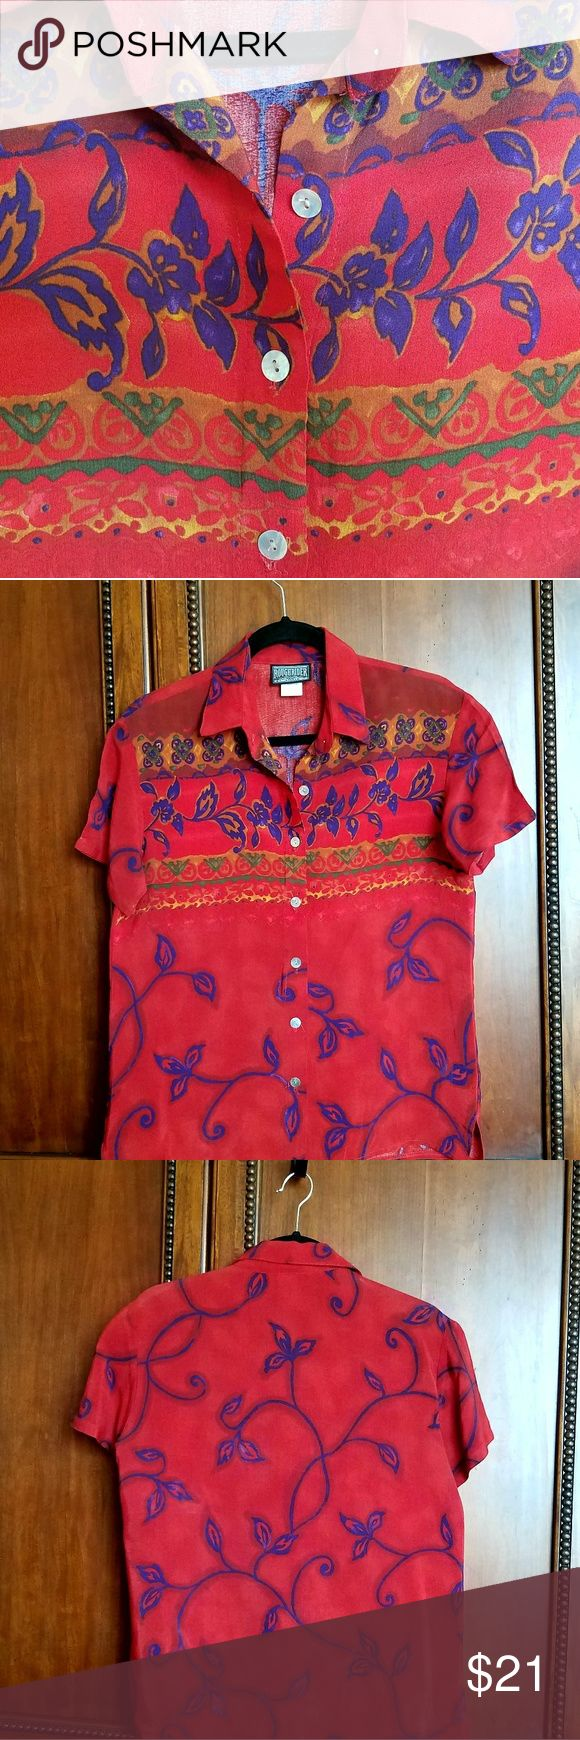 Flowy Rayon Scrollwork Blouse This is classy, vintage western wear made of 100% rayon - drapes effortlessly on the body. The blouse is red with blue swirls & touches of green & palomino. Shell buttons, side slits.  Timeless, this beautiful blouse deserves a new wearer who will also appreciate its versatility!  I dressed this blouse up for the office with a navy pencil skirt, Brighton belt & classic pumps. I dressed it down for rodeo & casual events with blue jeans, a belt with a Montana…